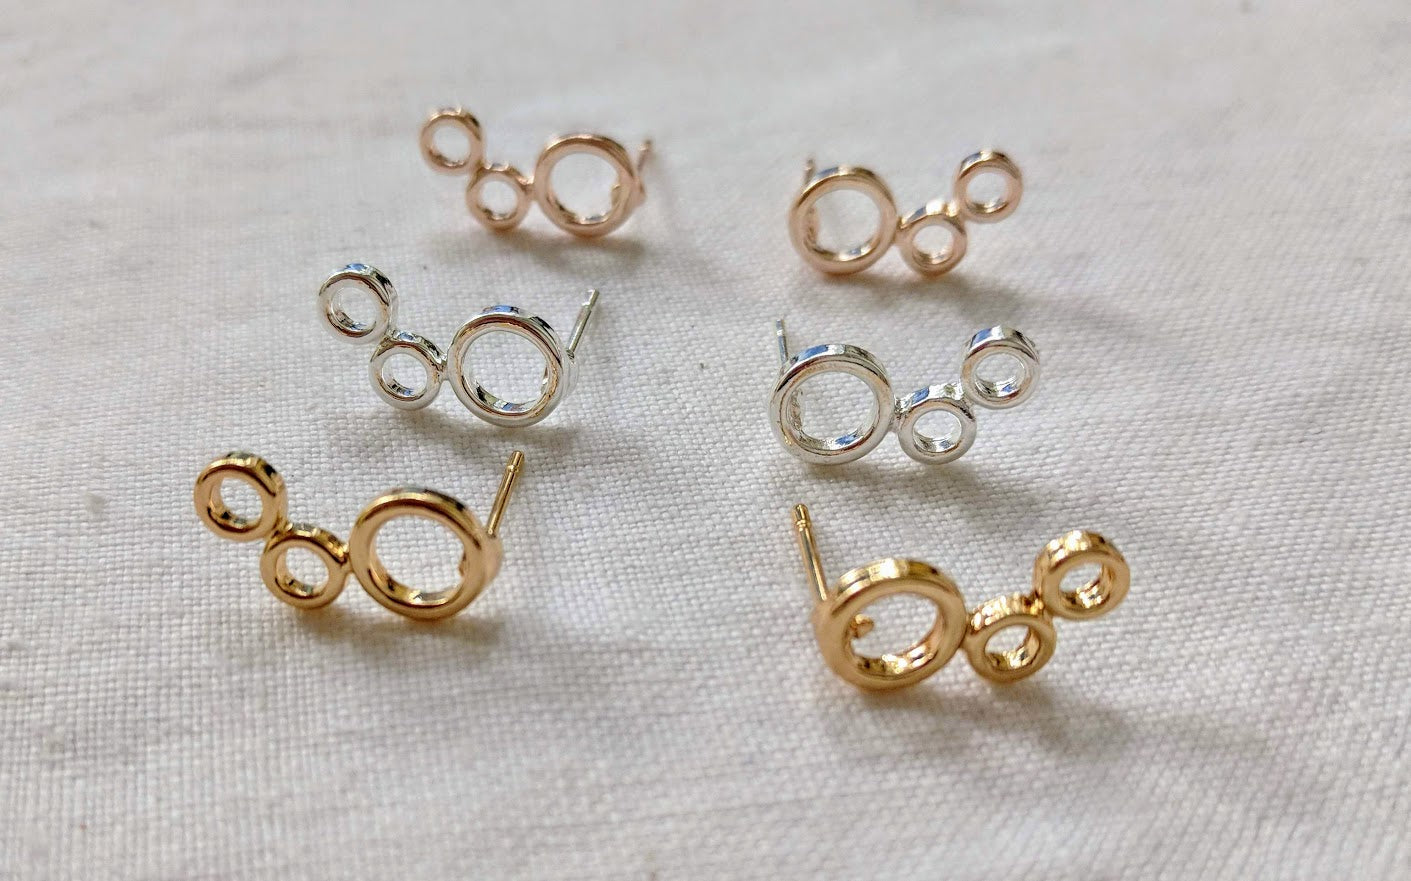 Climber studs | Circle climbers earrings | Silver, Gold or Rose Gold Climbing studs